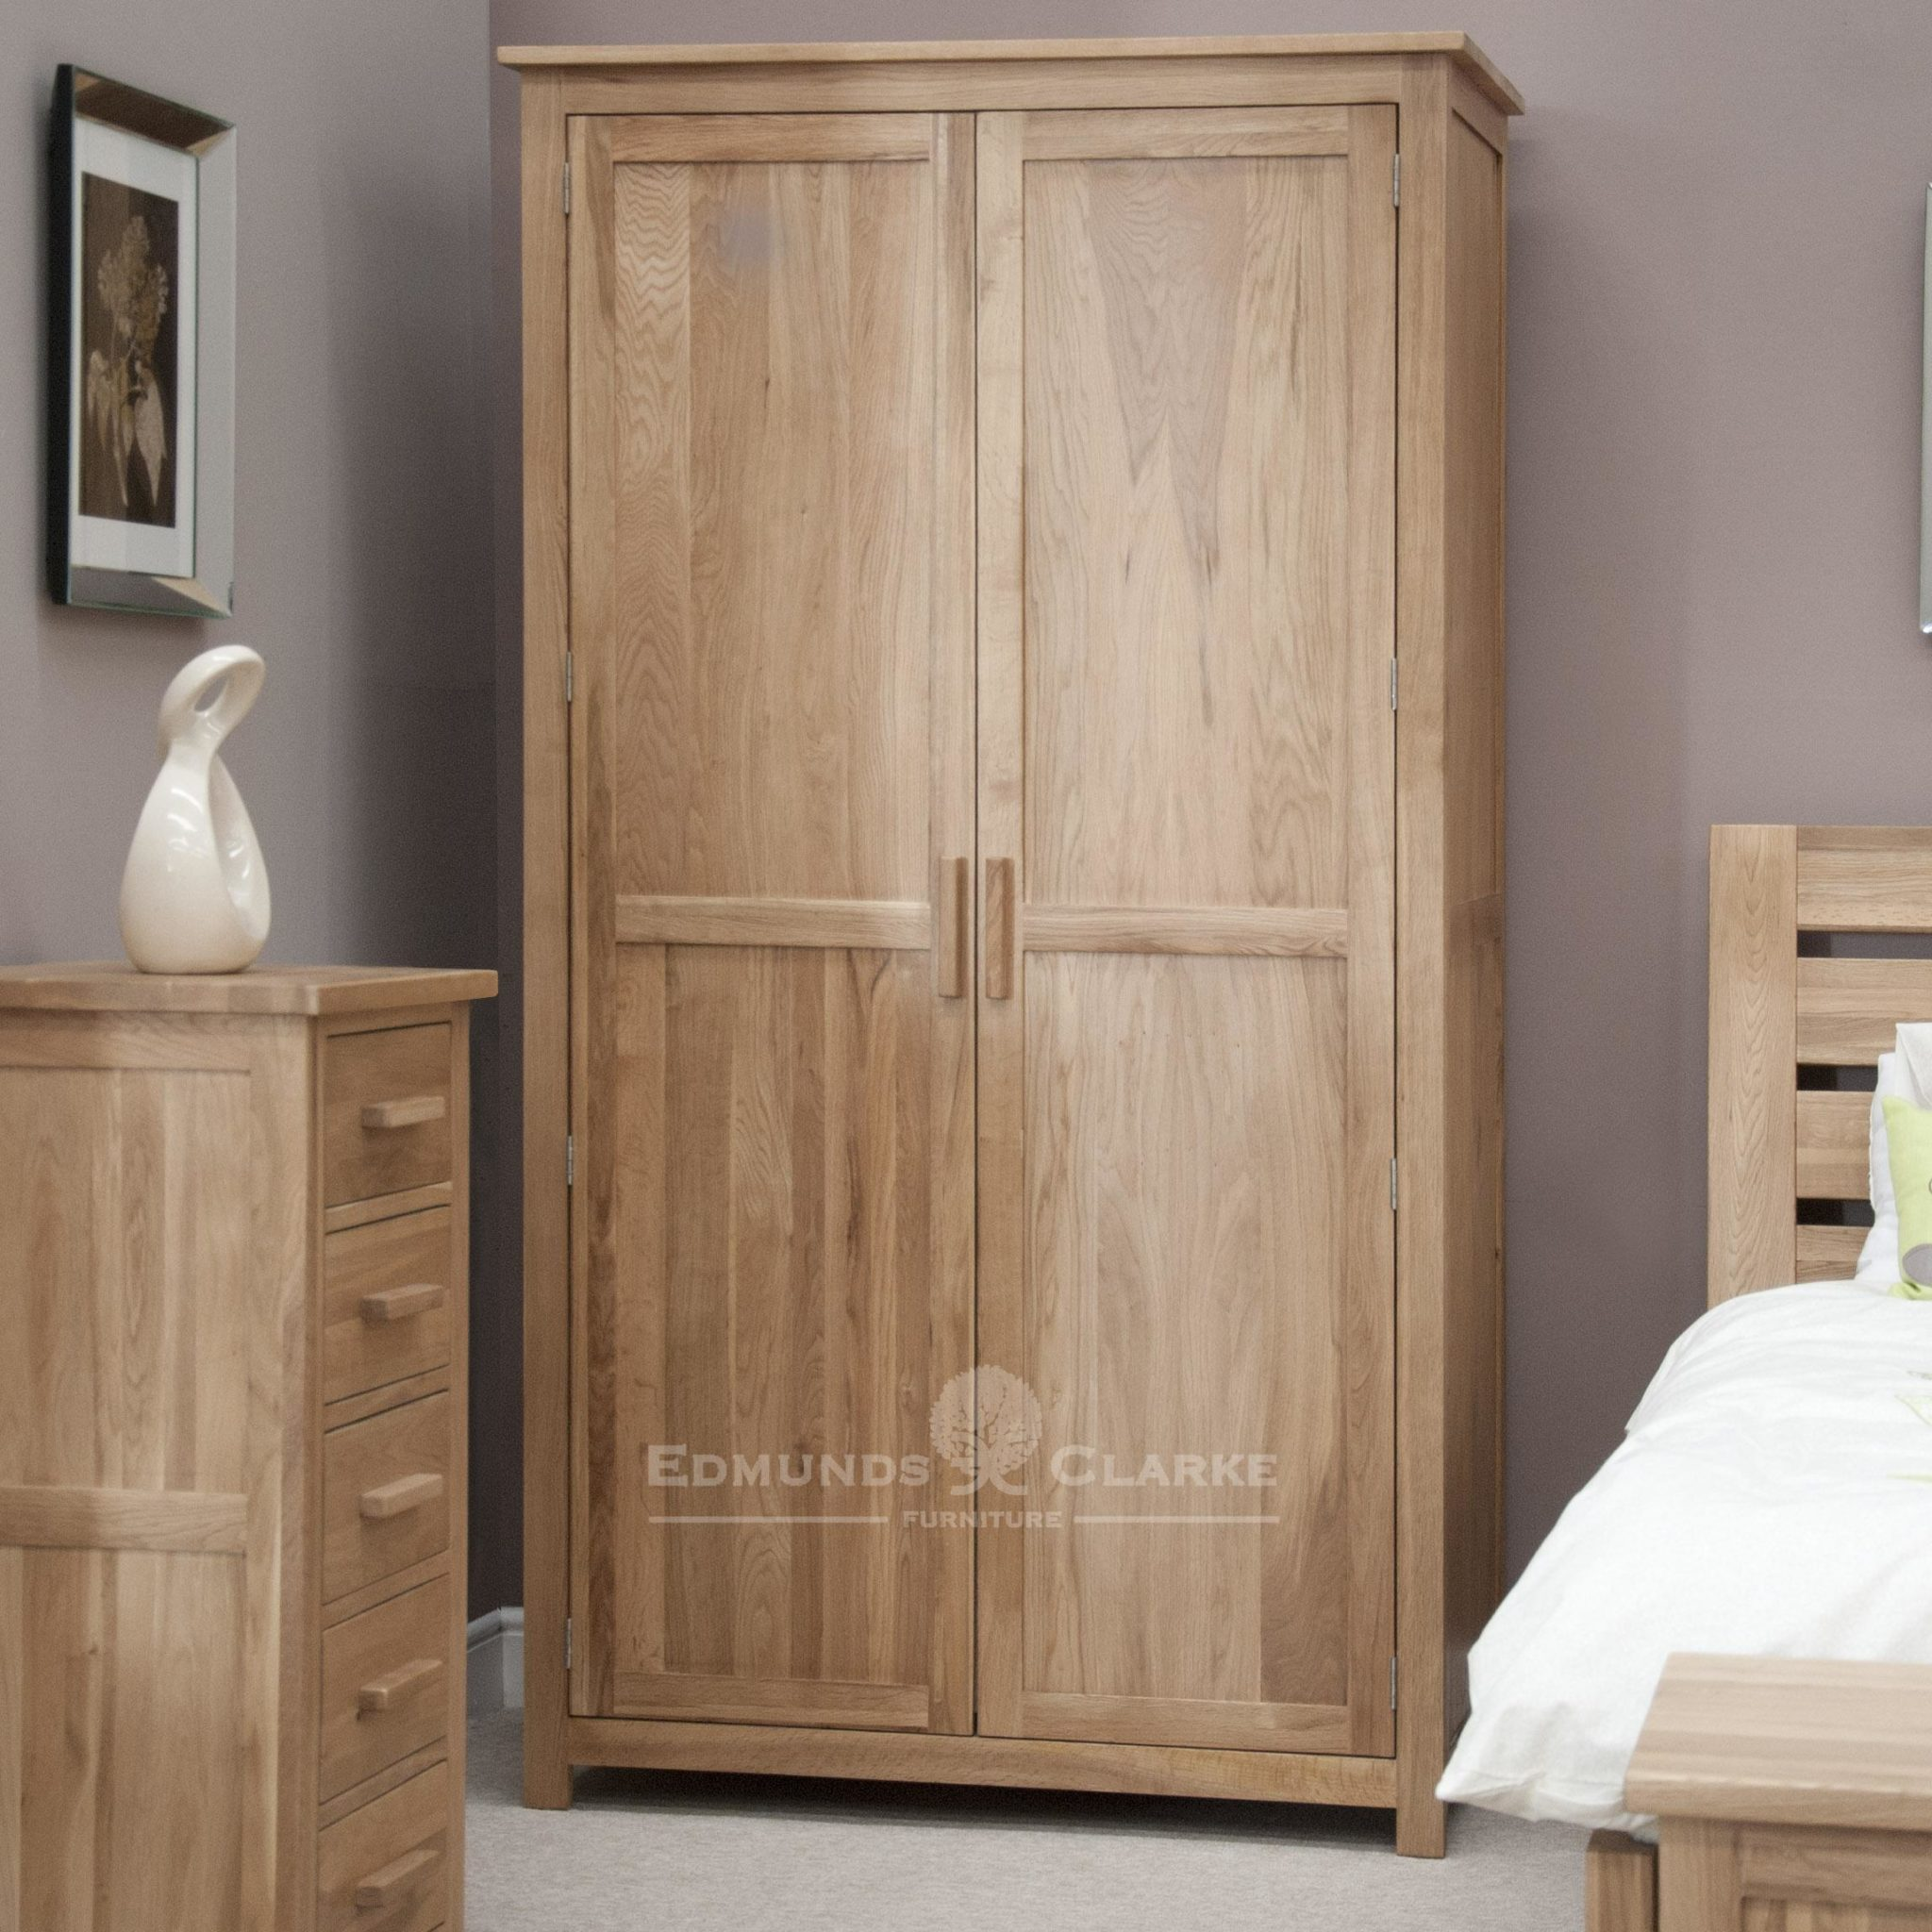 Bury Solid oak double wardrobe. all hanging finished in light lacquer oak with choice of handles